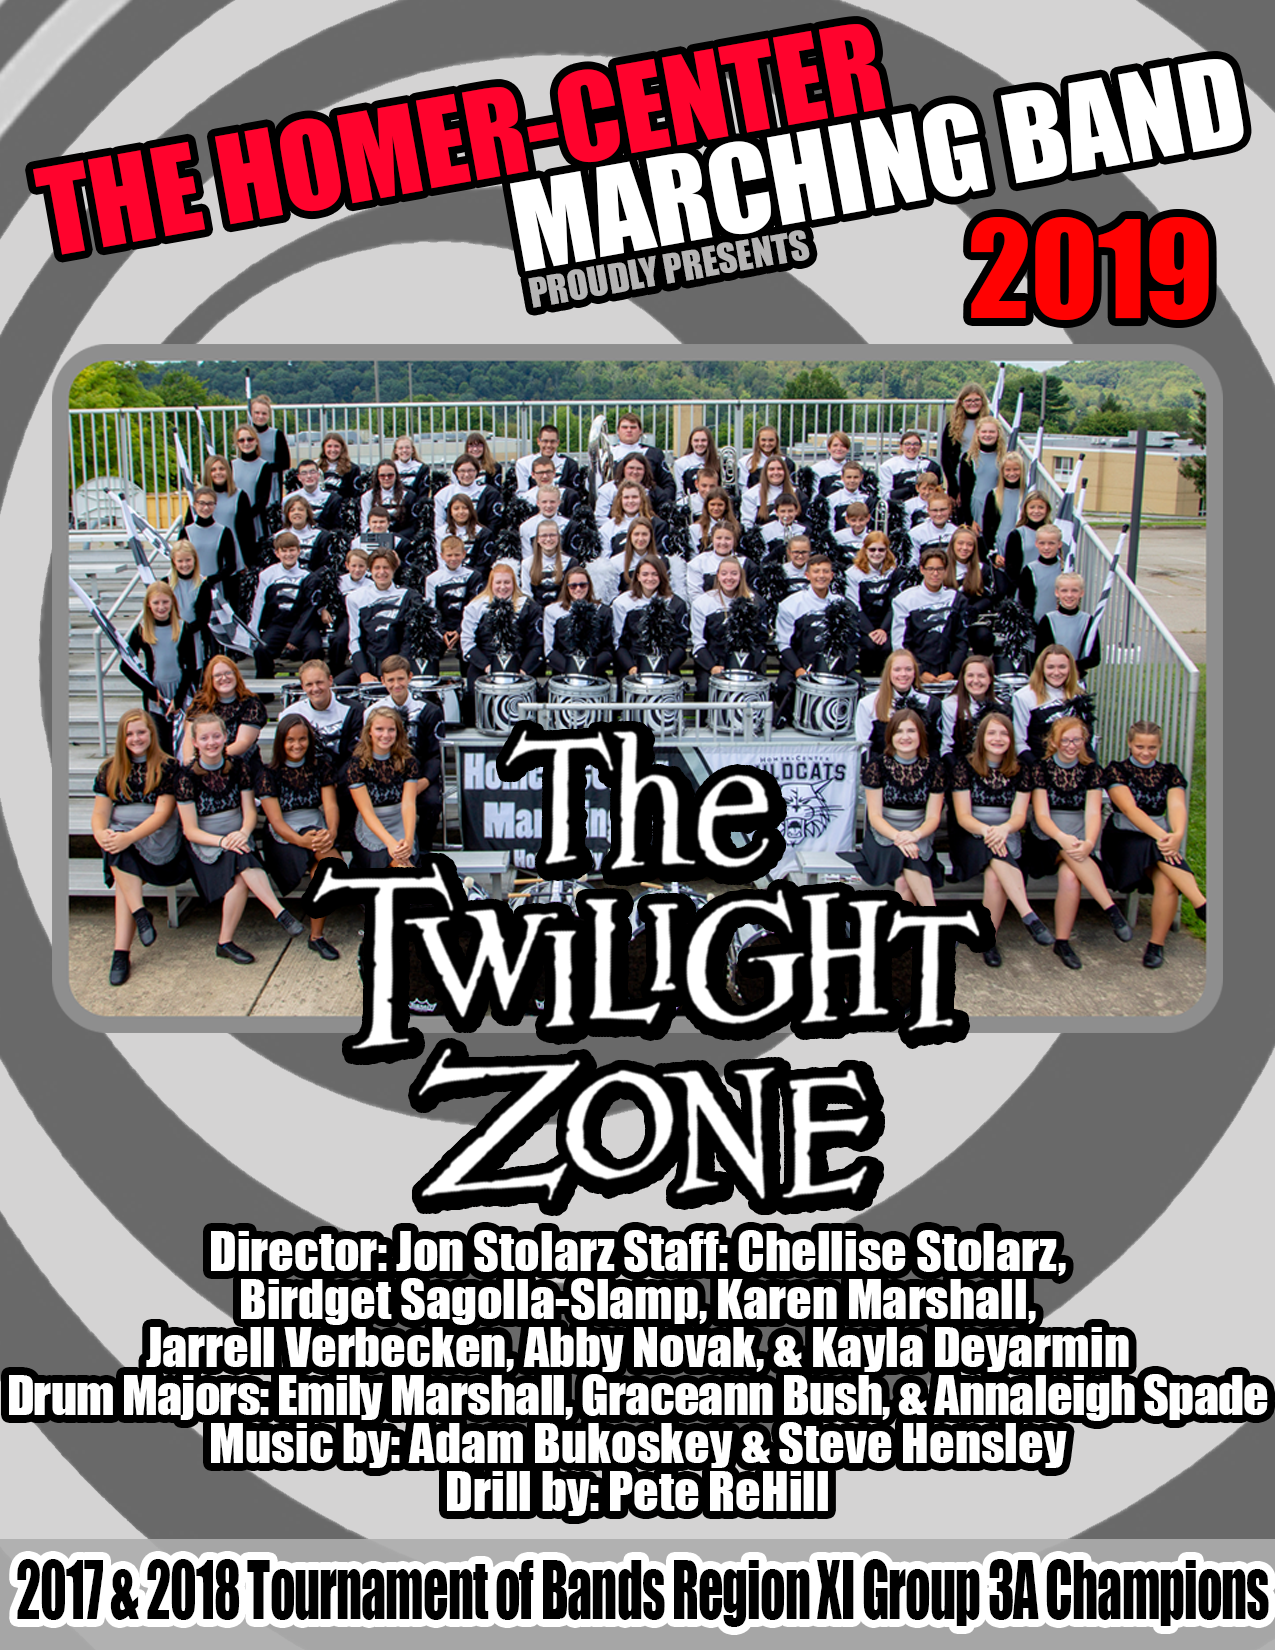 Homer-Center Marching Band 2019 The Twilight Zone